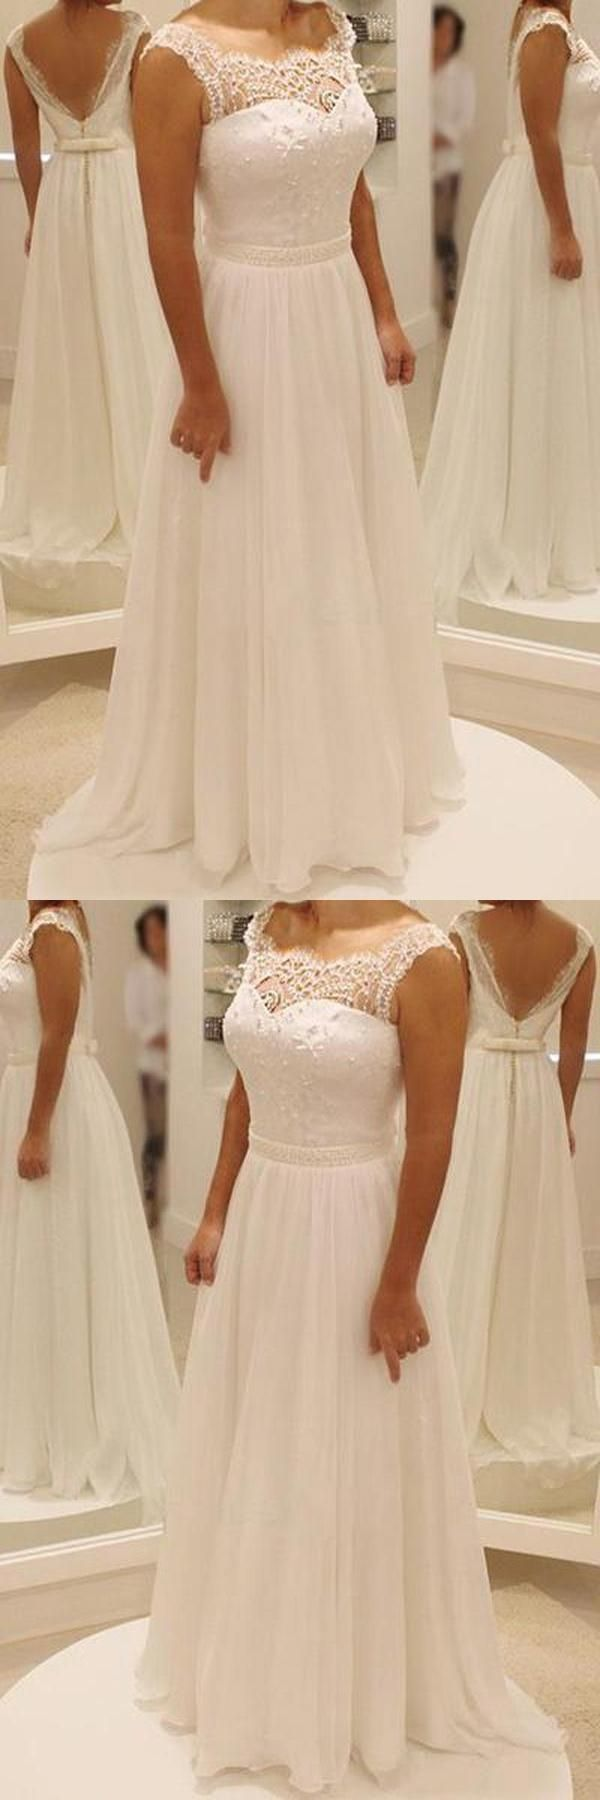 Discount colorful wedding dresses backless simple wedding dresses